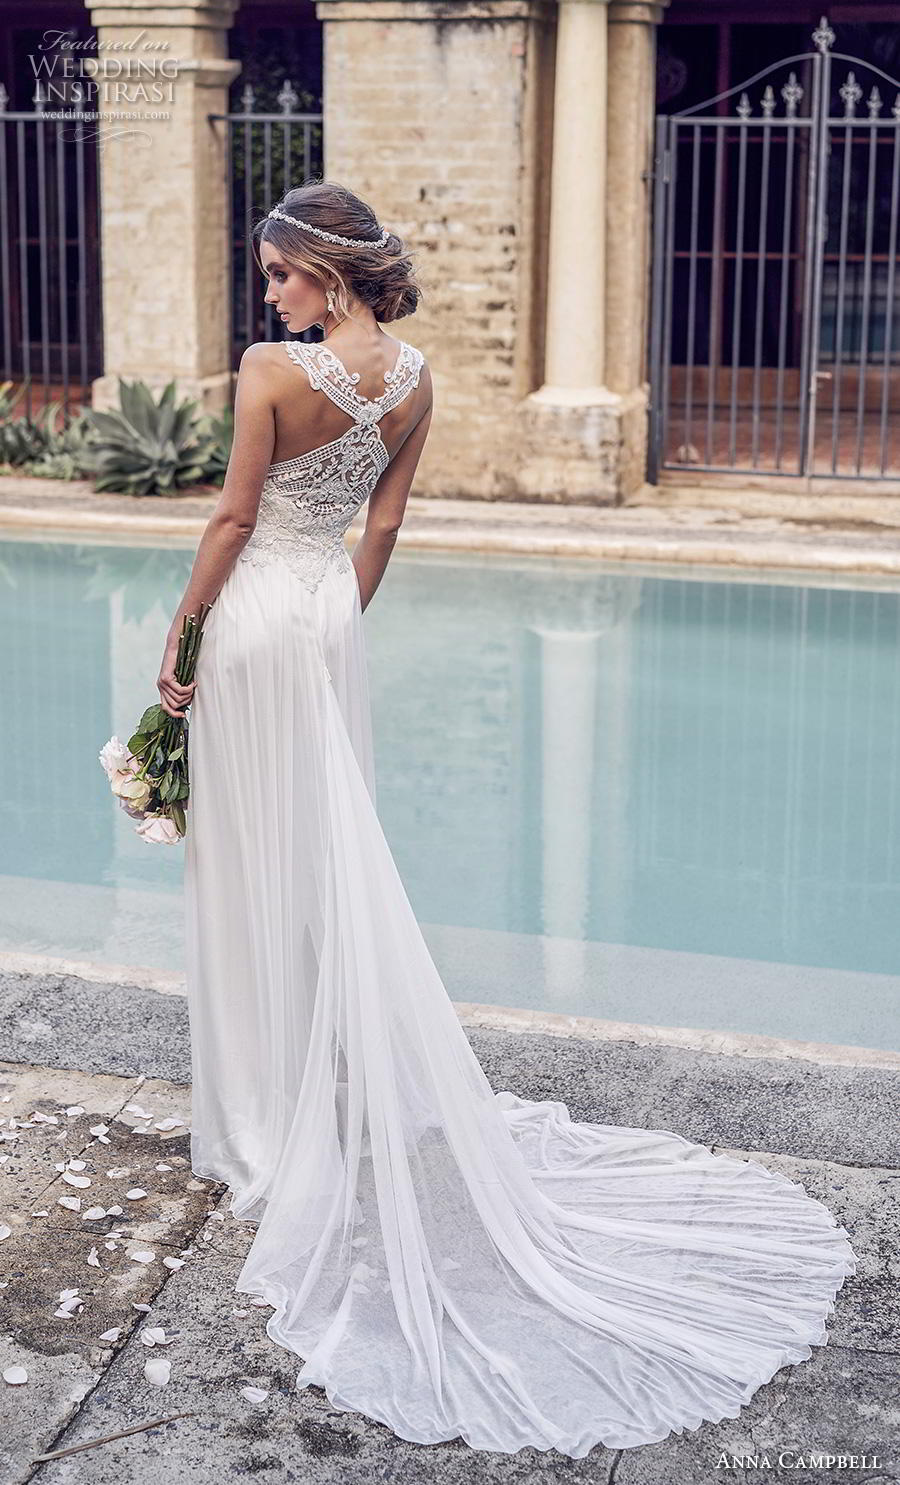 anna campbell 2019 bridal sleeveless halter neck heavily embellished bodice tulle skirt elegant grecian column wedding dress rasor back chapel train (6) bv